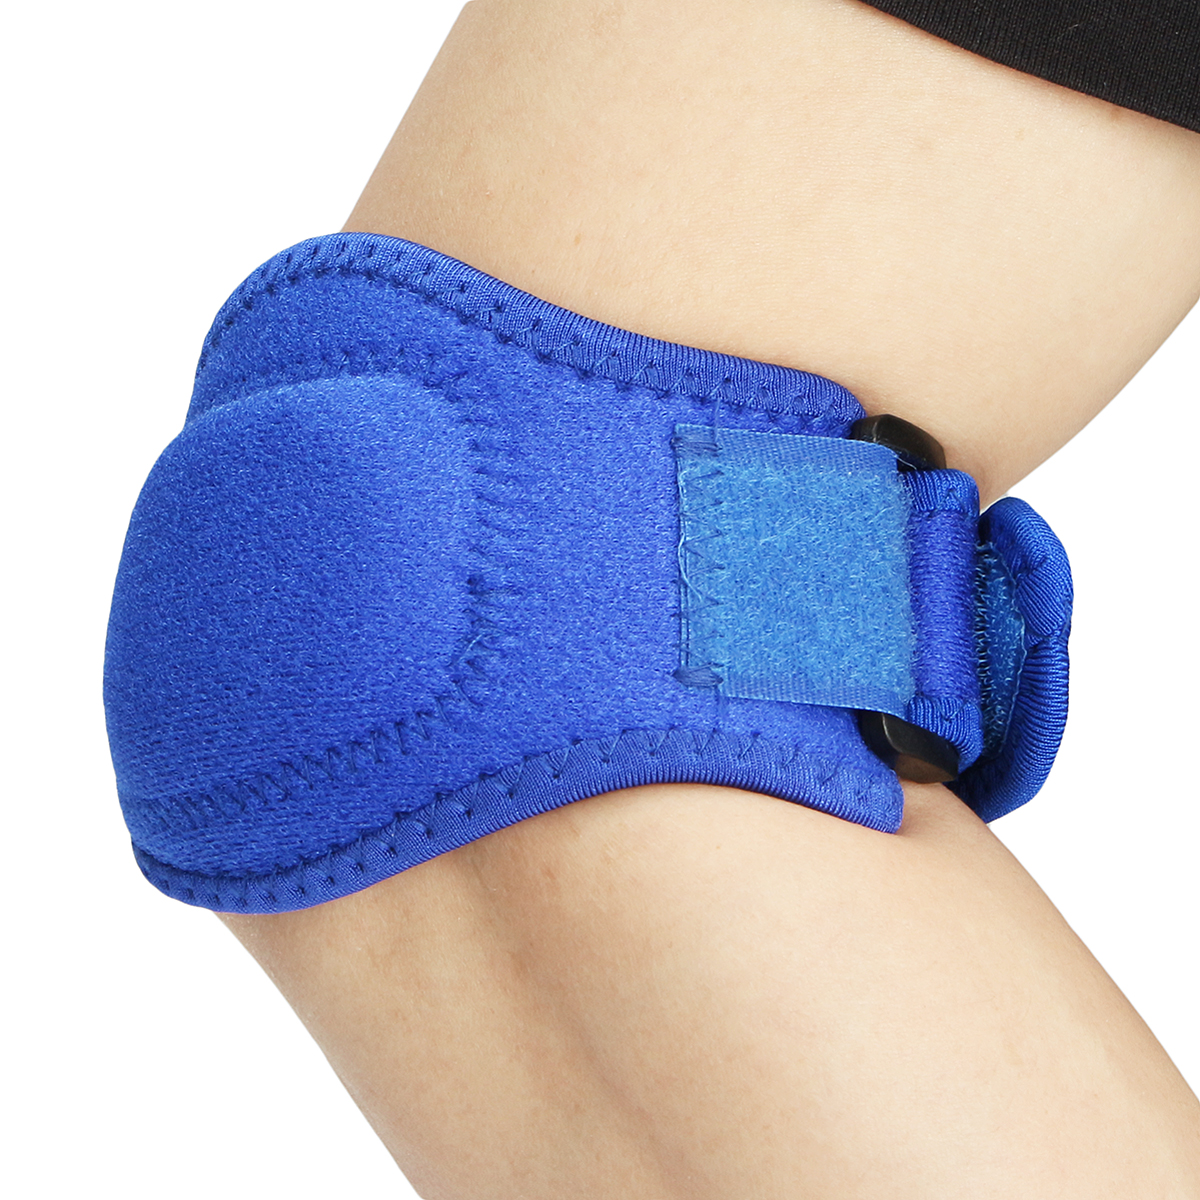 New Tennis Golf Elbow Support Brace Strap Band Forearm Protection Tendon Blue